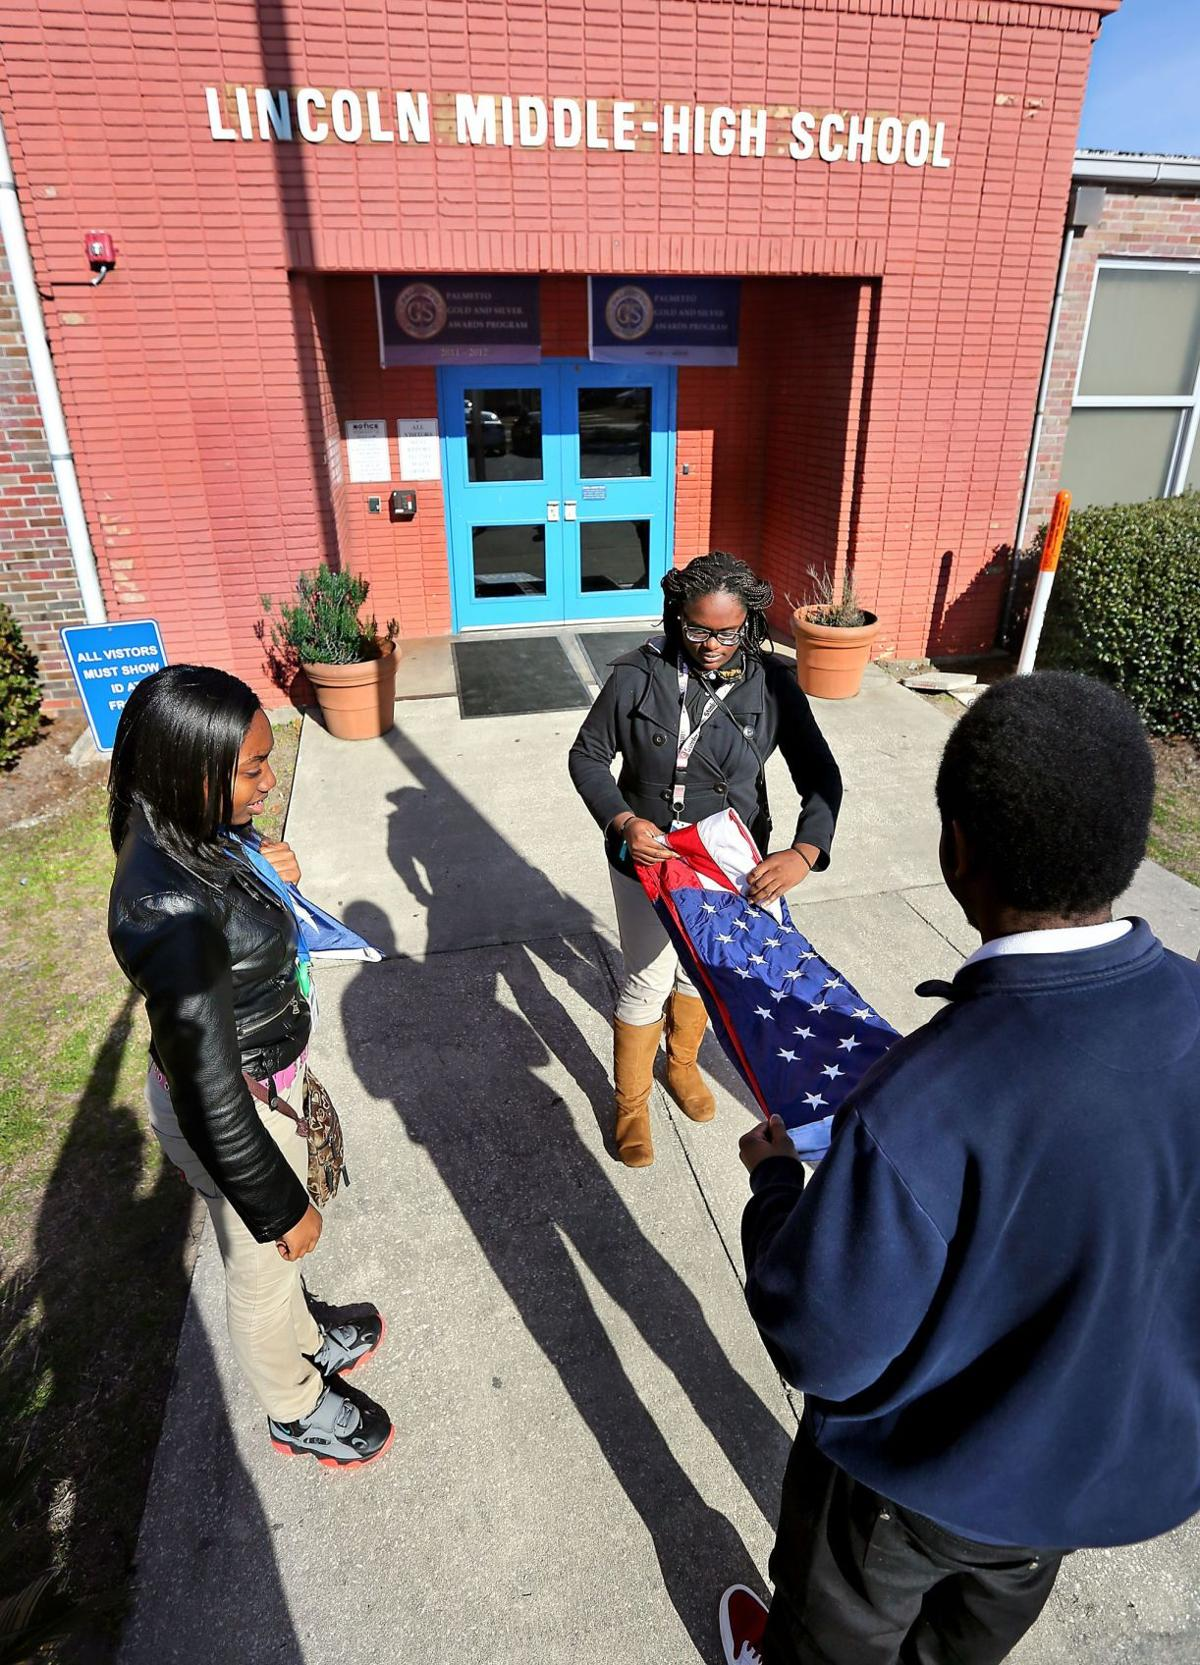 National Action Network alleges schools suffer in McClellanville